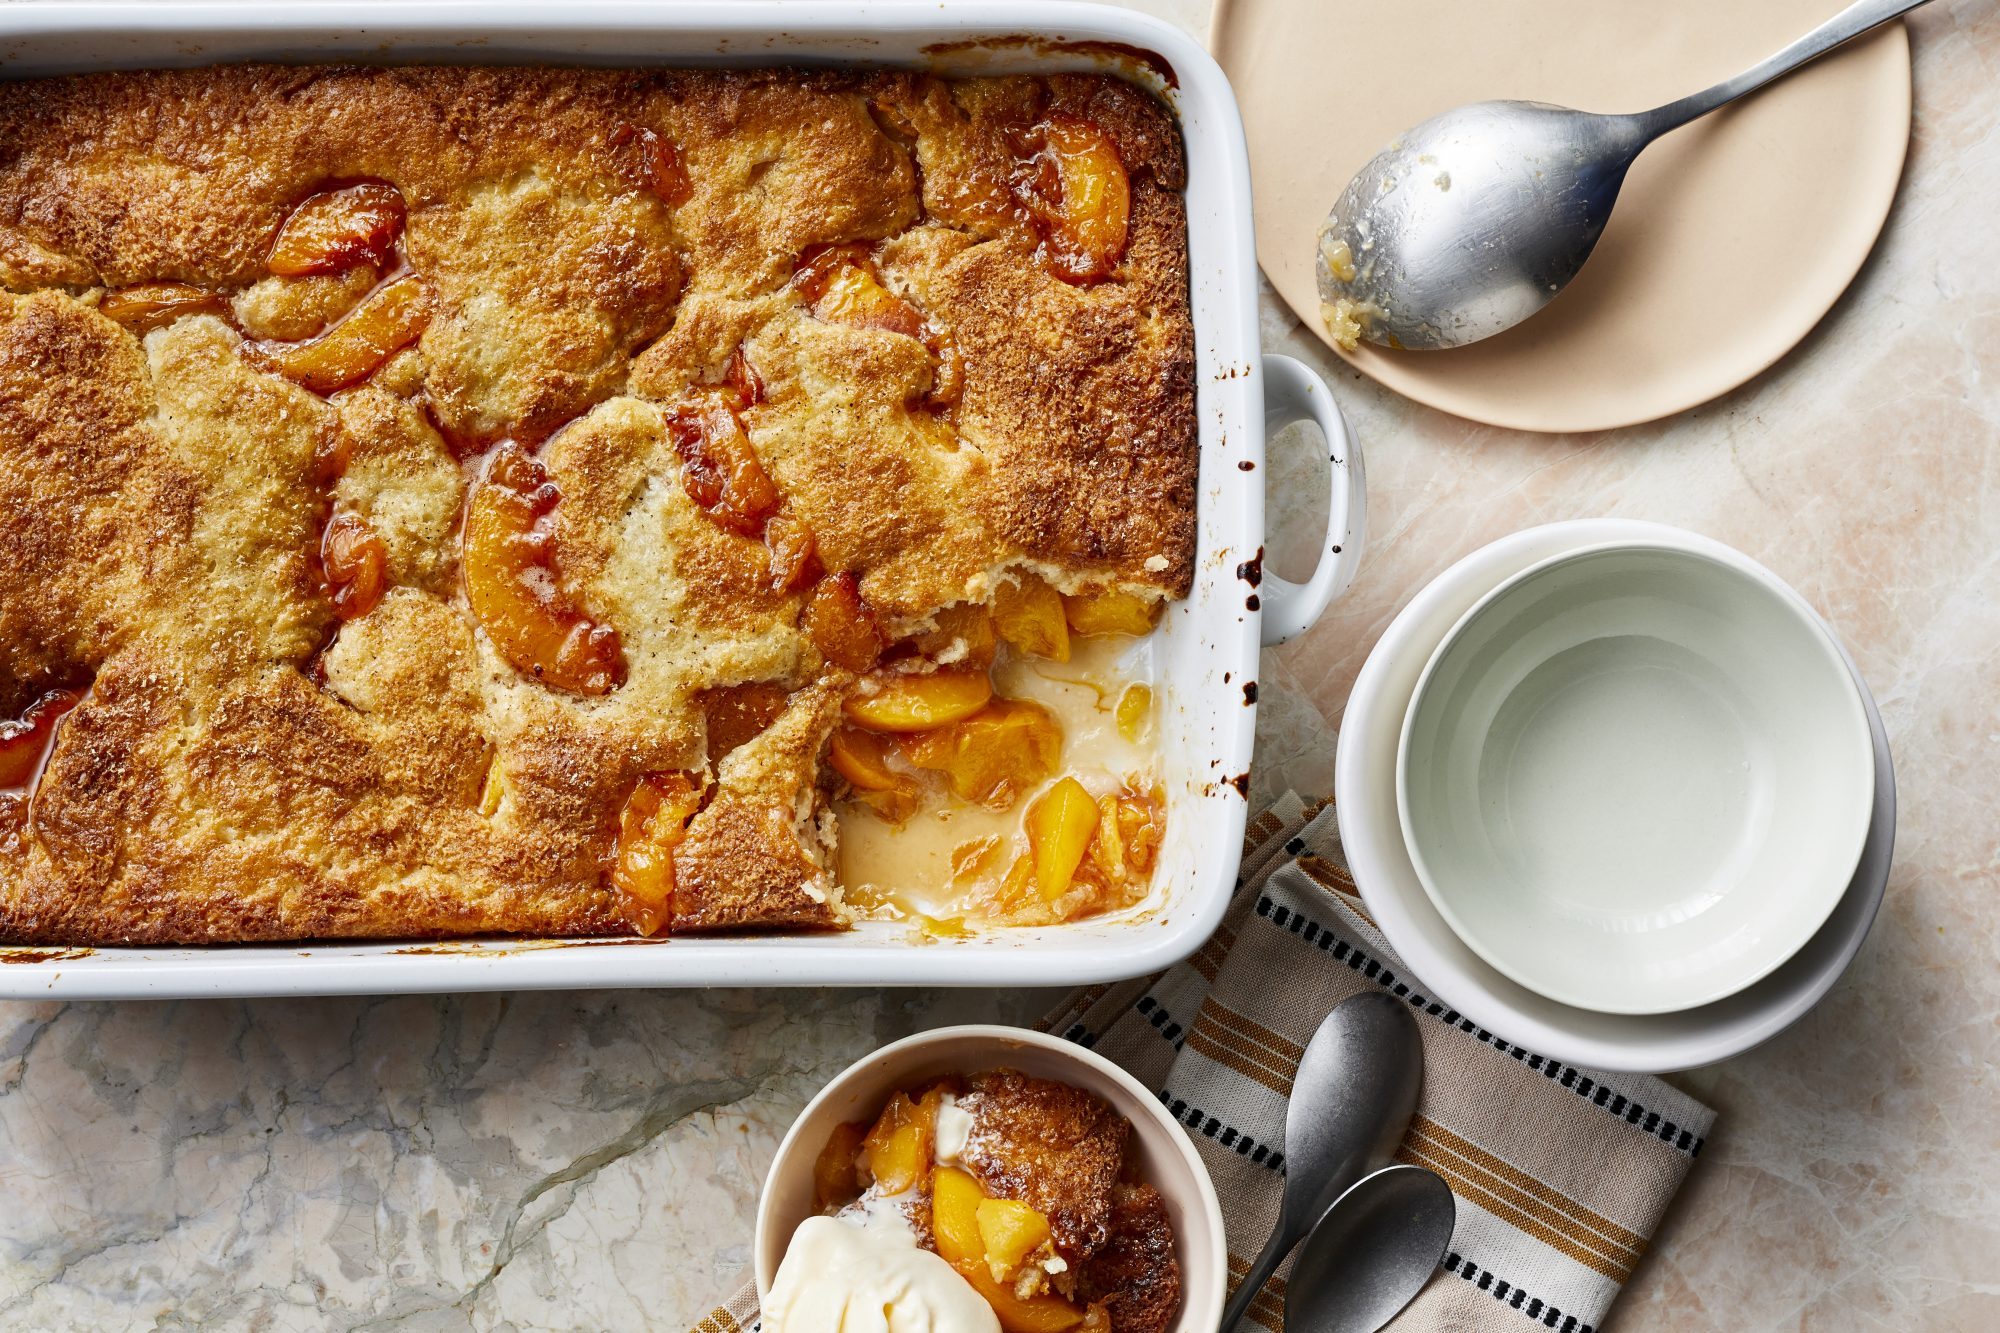 mr-easy-peach-cobbler